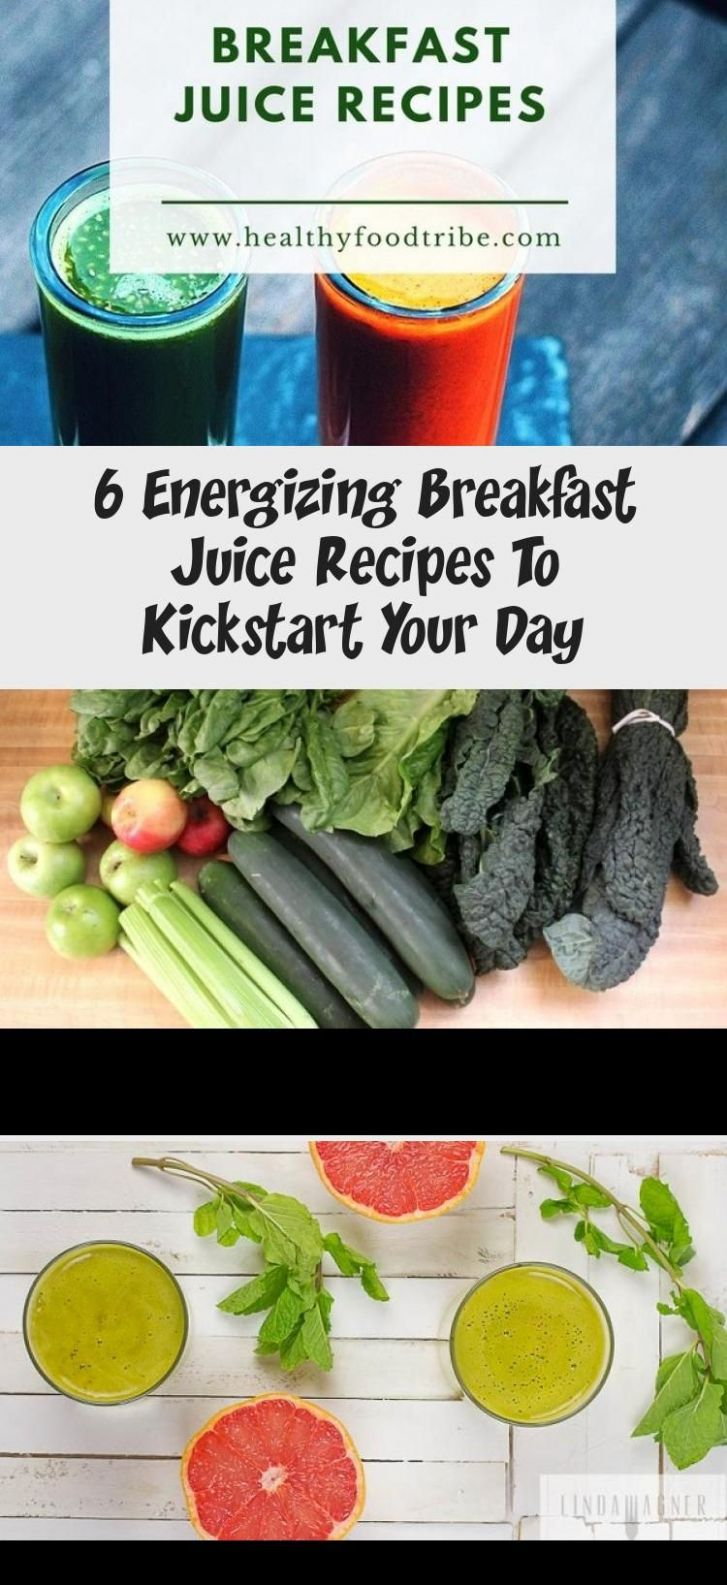 10 Energizing Breakfast Juice Recipes To Kickstart Your Day ..